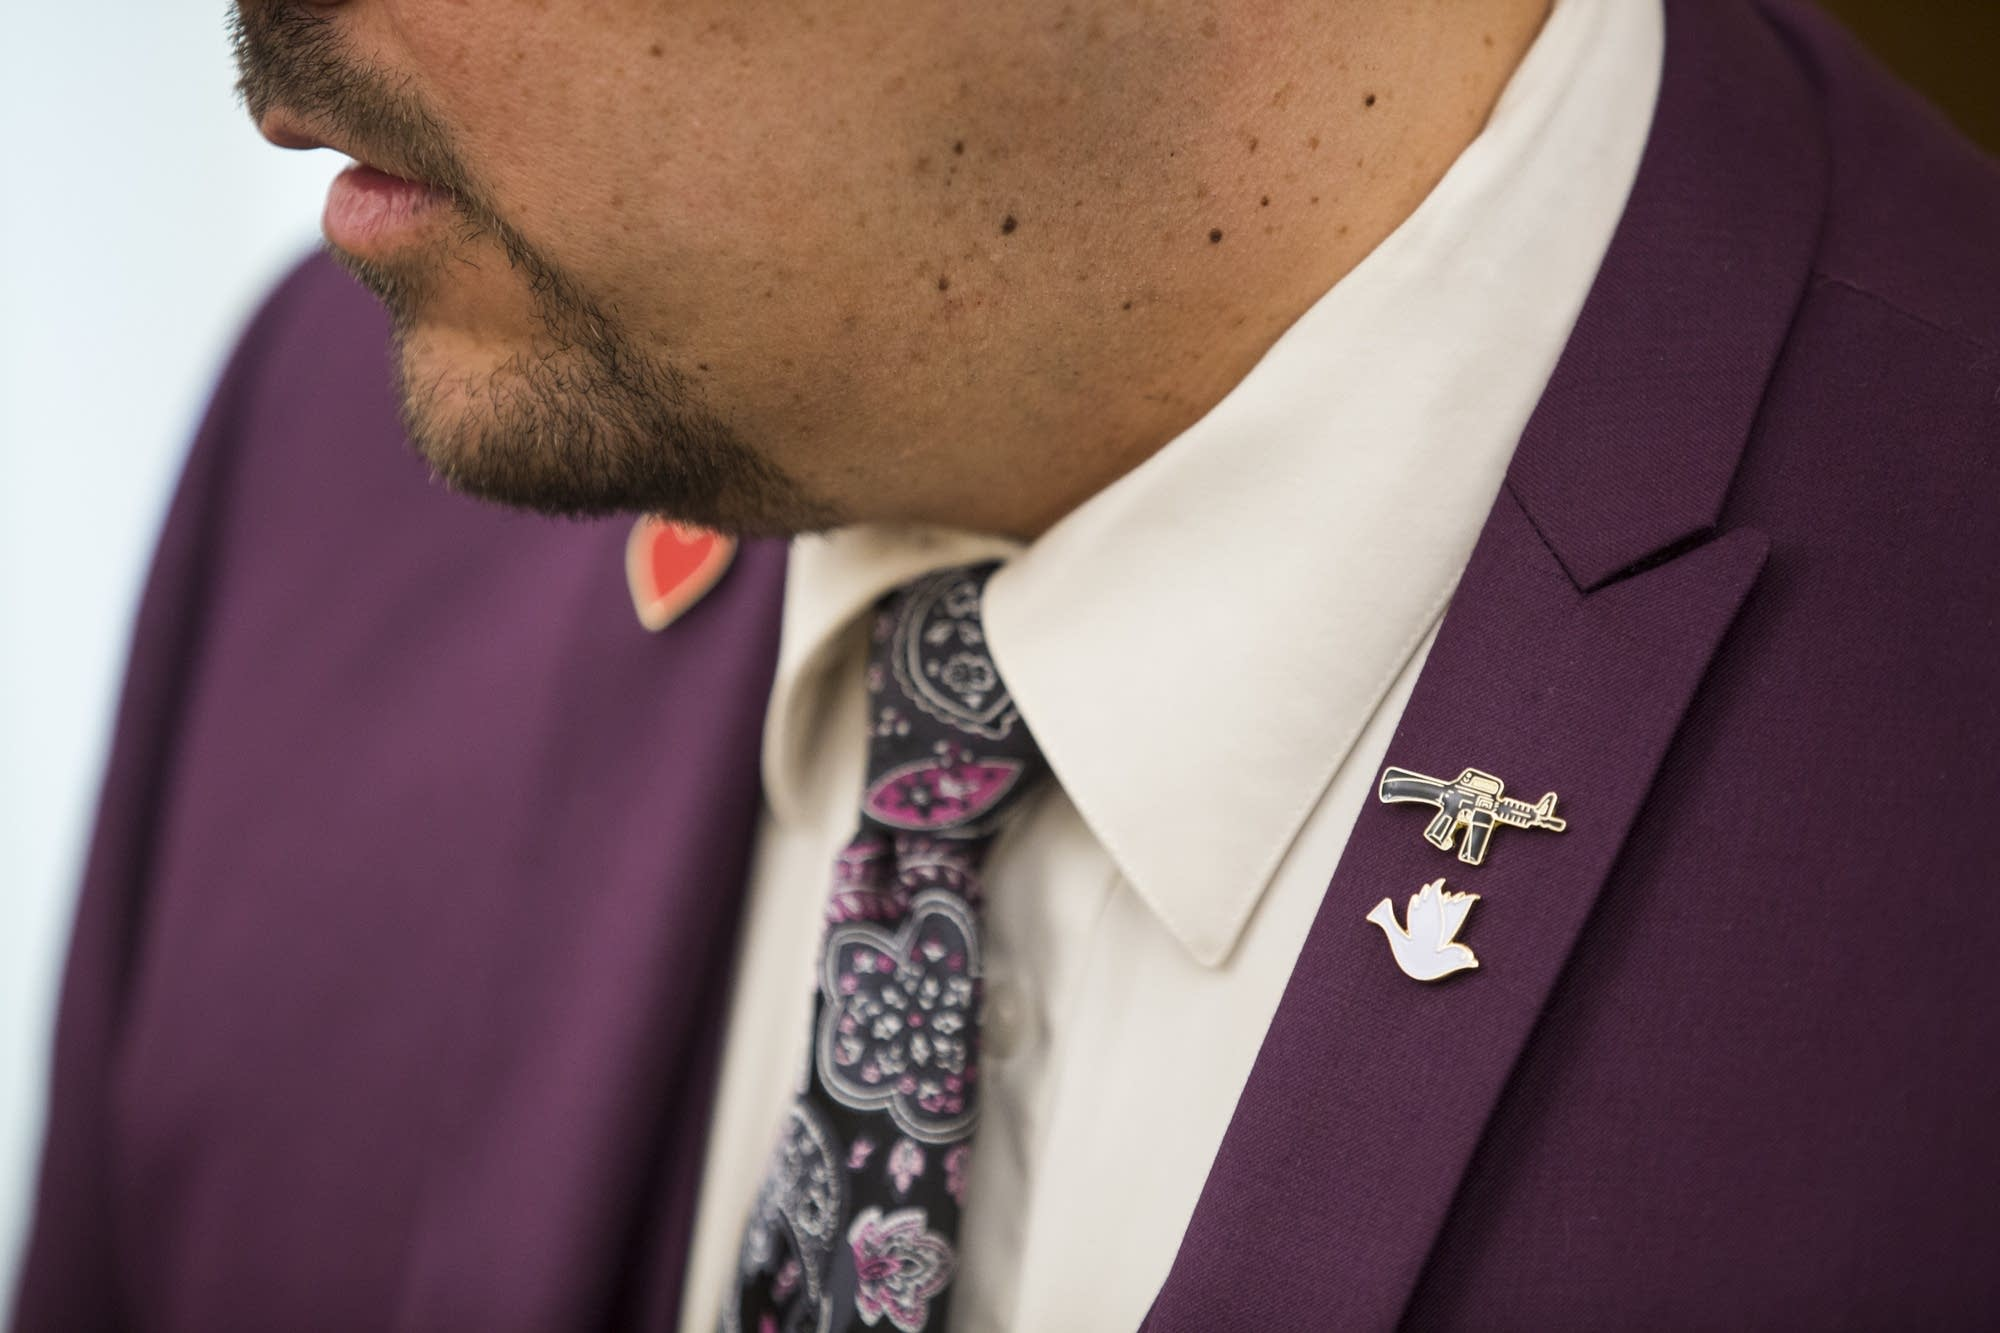 Eric Lucero wears pins in the shape of a dove, heart, and an assault rifle